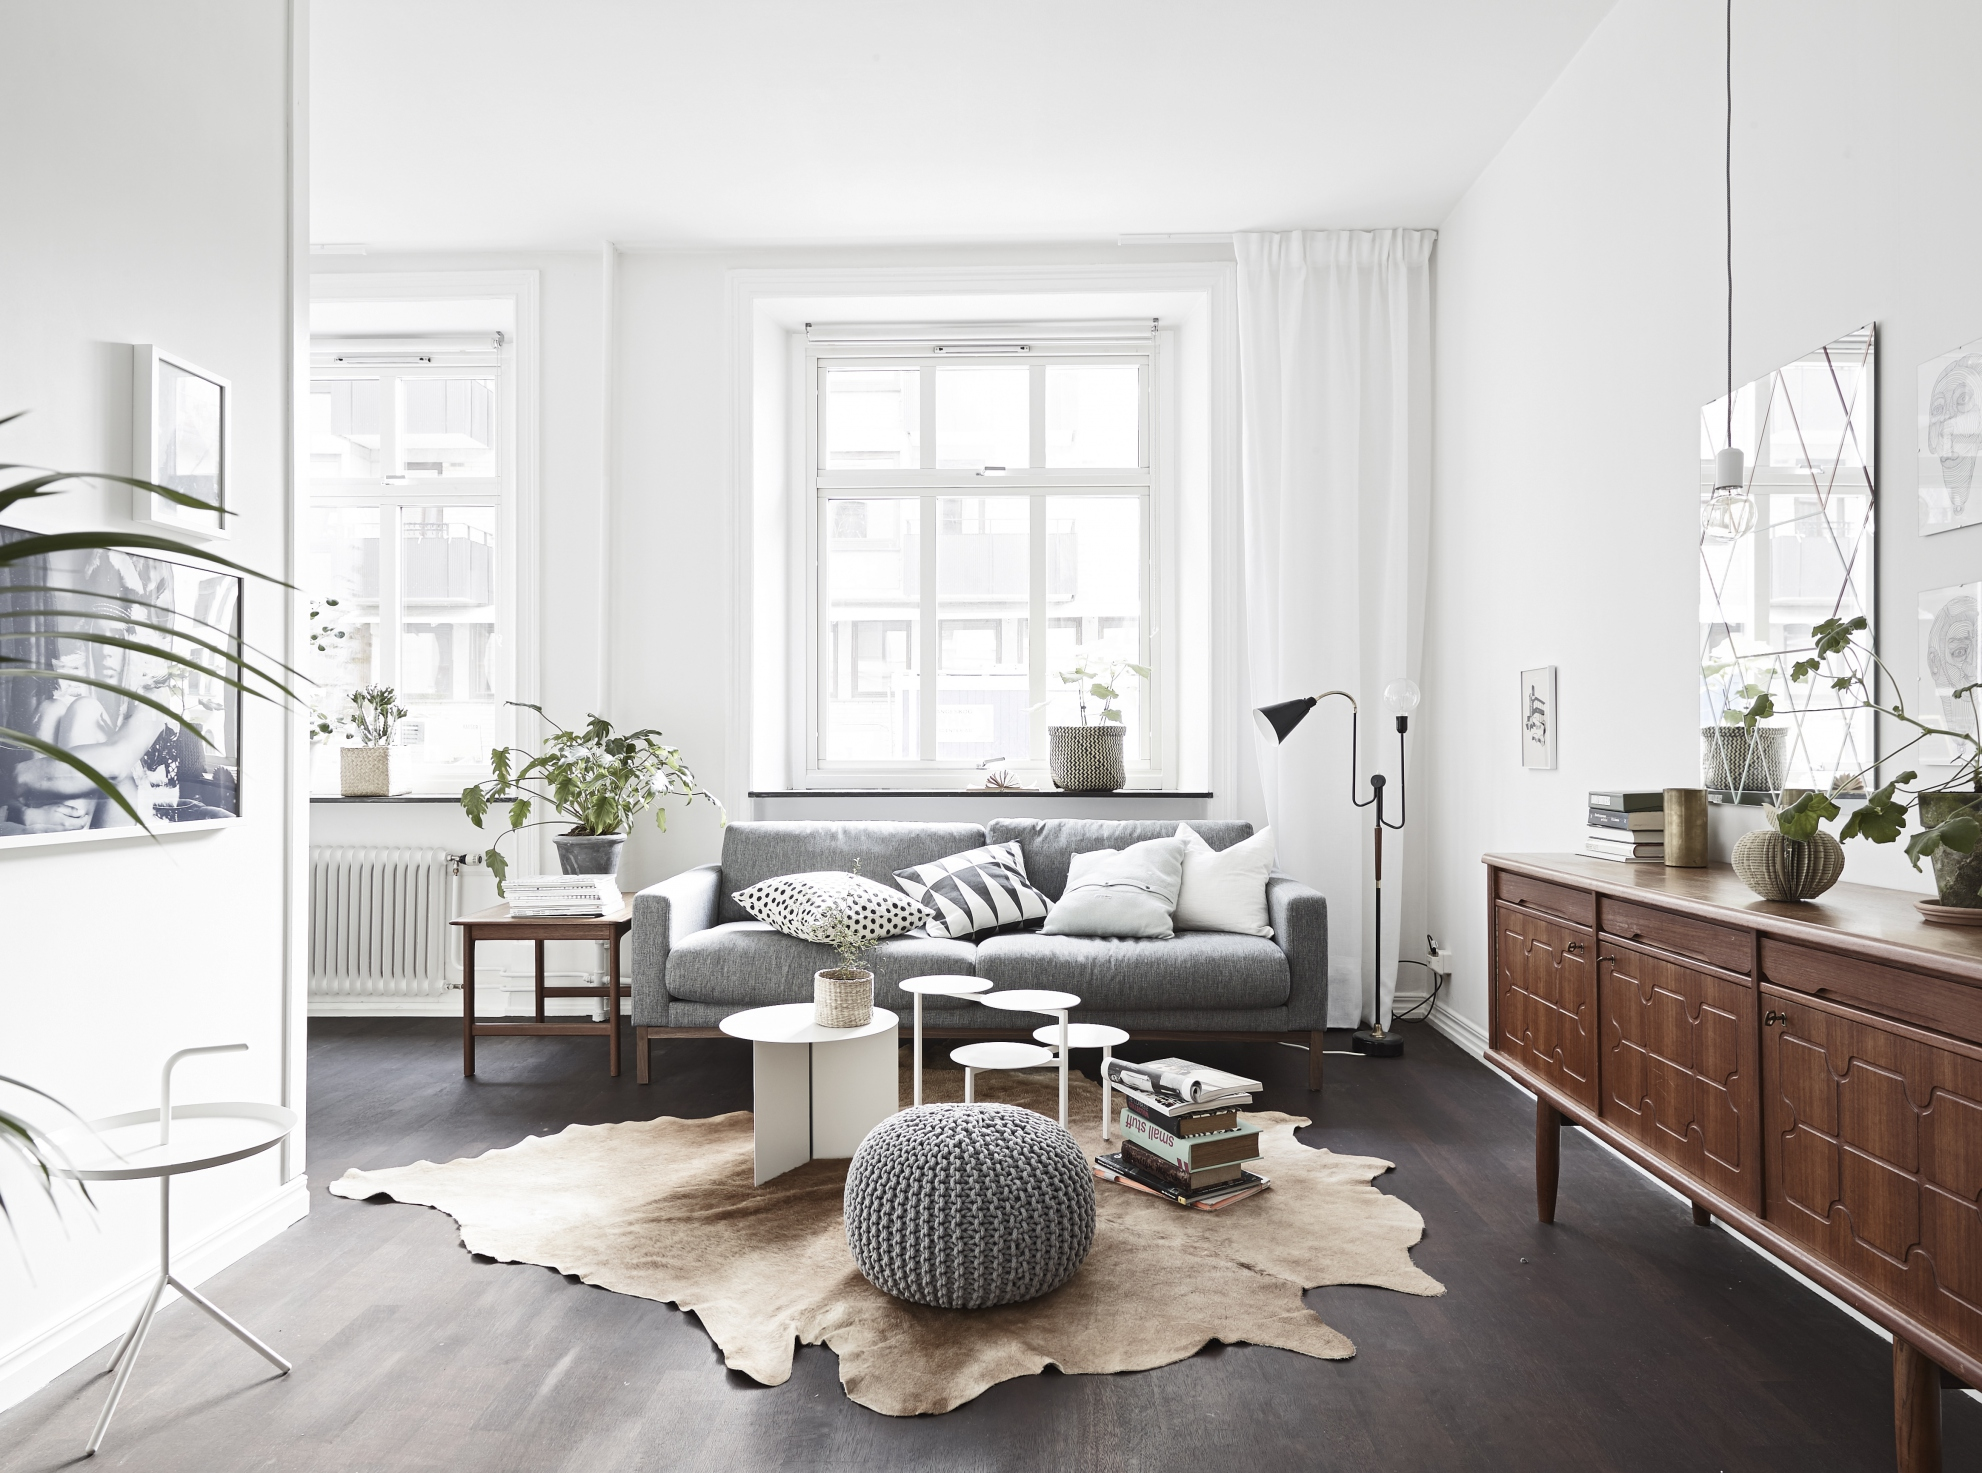 Soft colors on a dark floor coco lapine designcoco for Deco de interiores